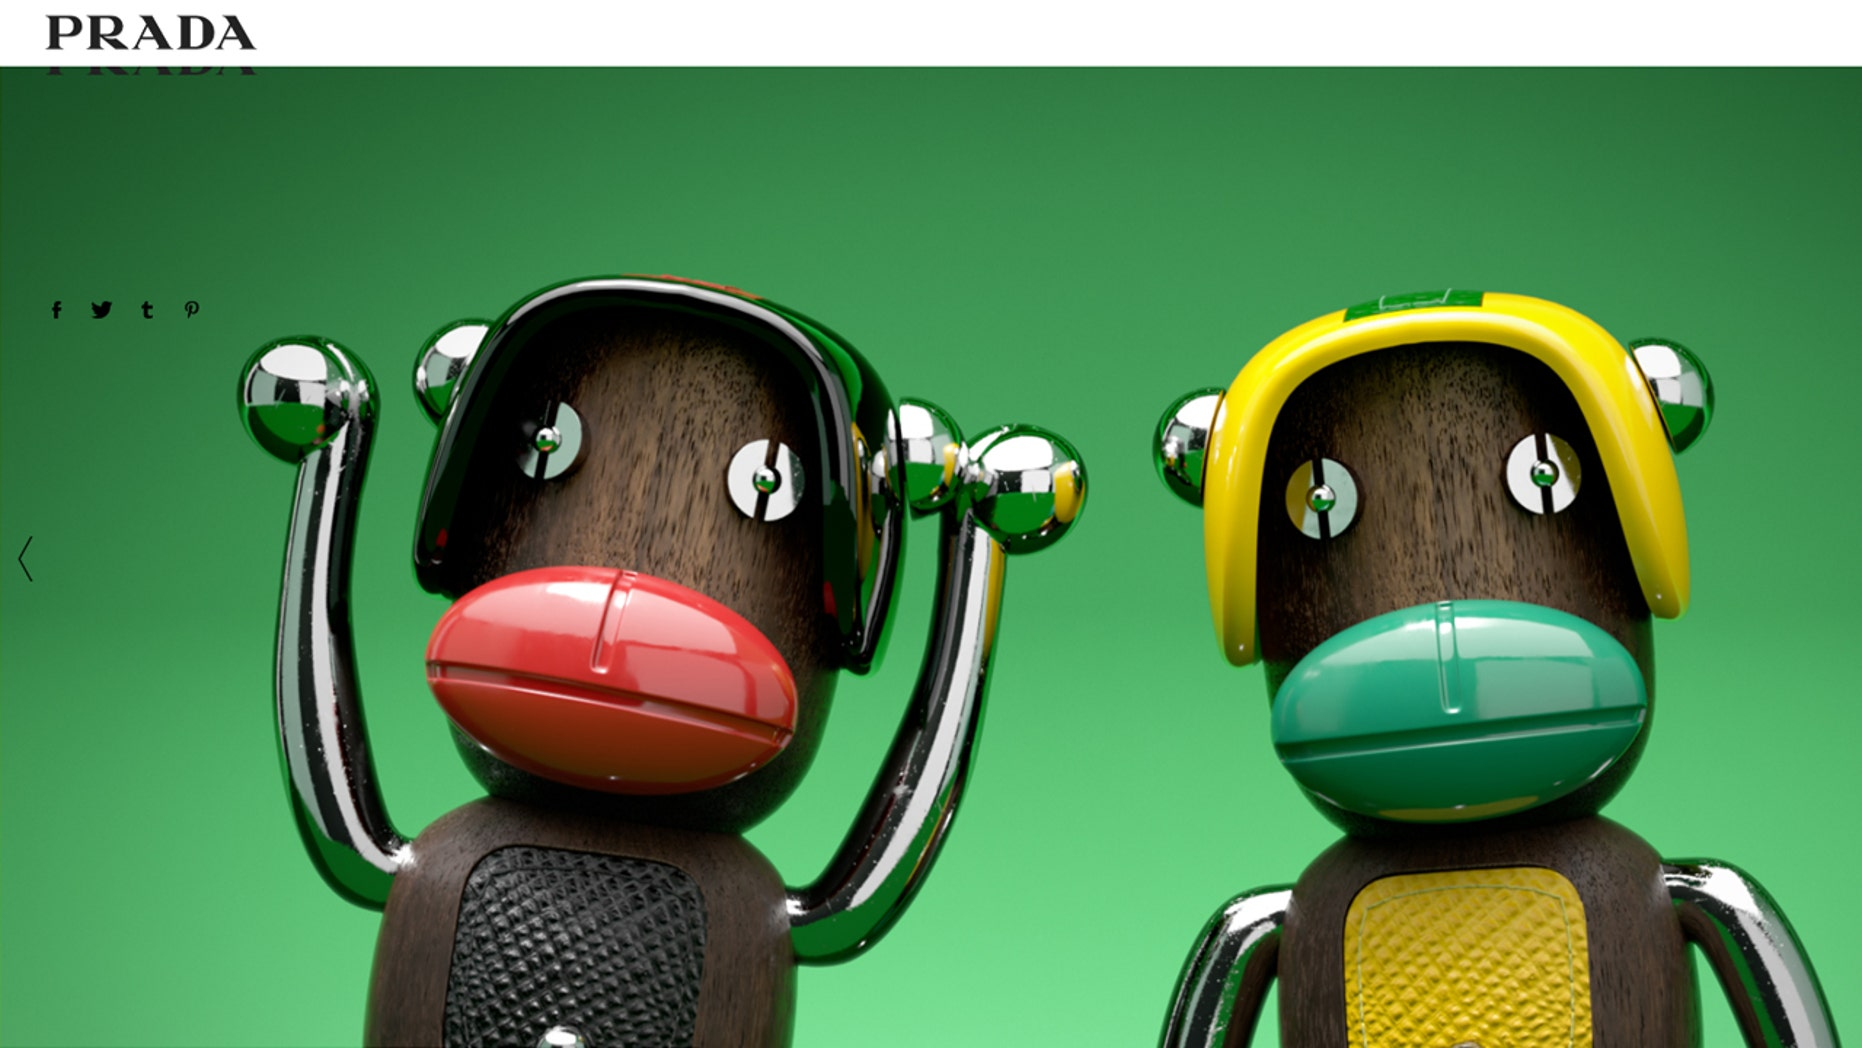 Prada made blackface monkey trinkets and didn't know they were racist